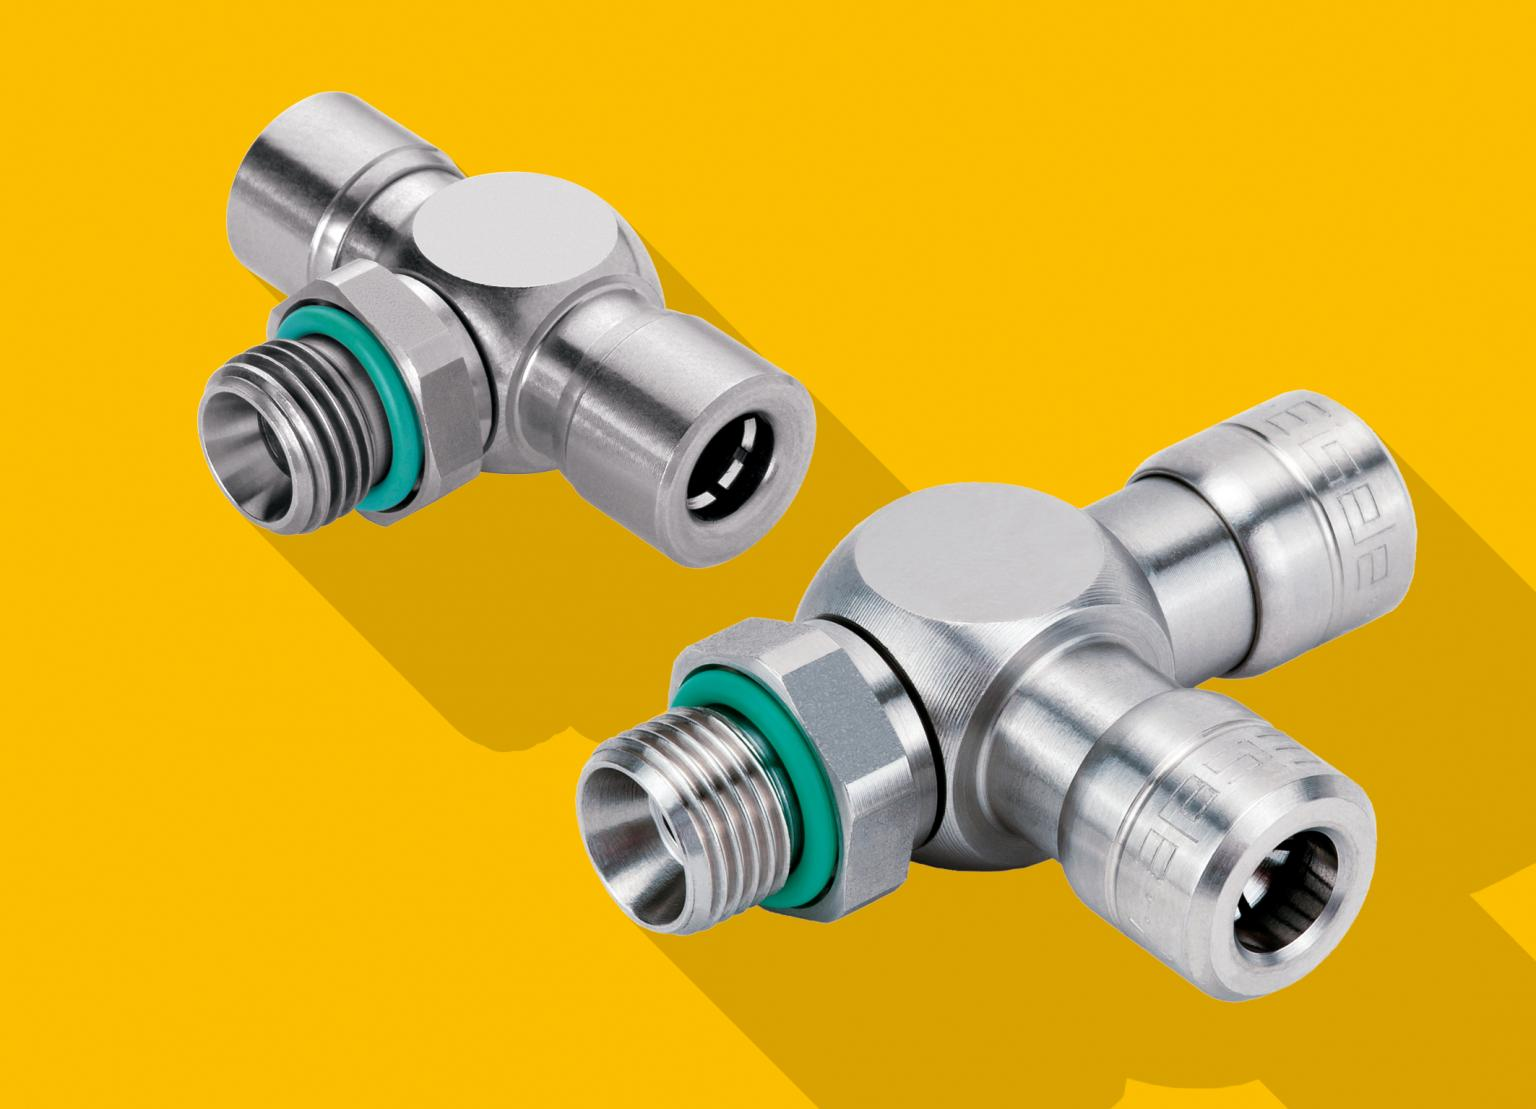 Eisele's durable and hygienic stainless steel push-in connectors that are suitable for use in compressed air systems for the food processing industry